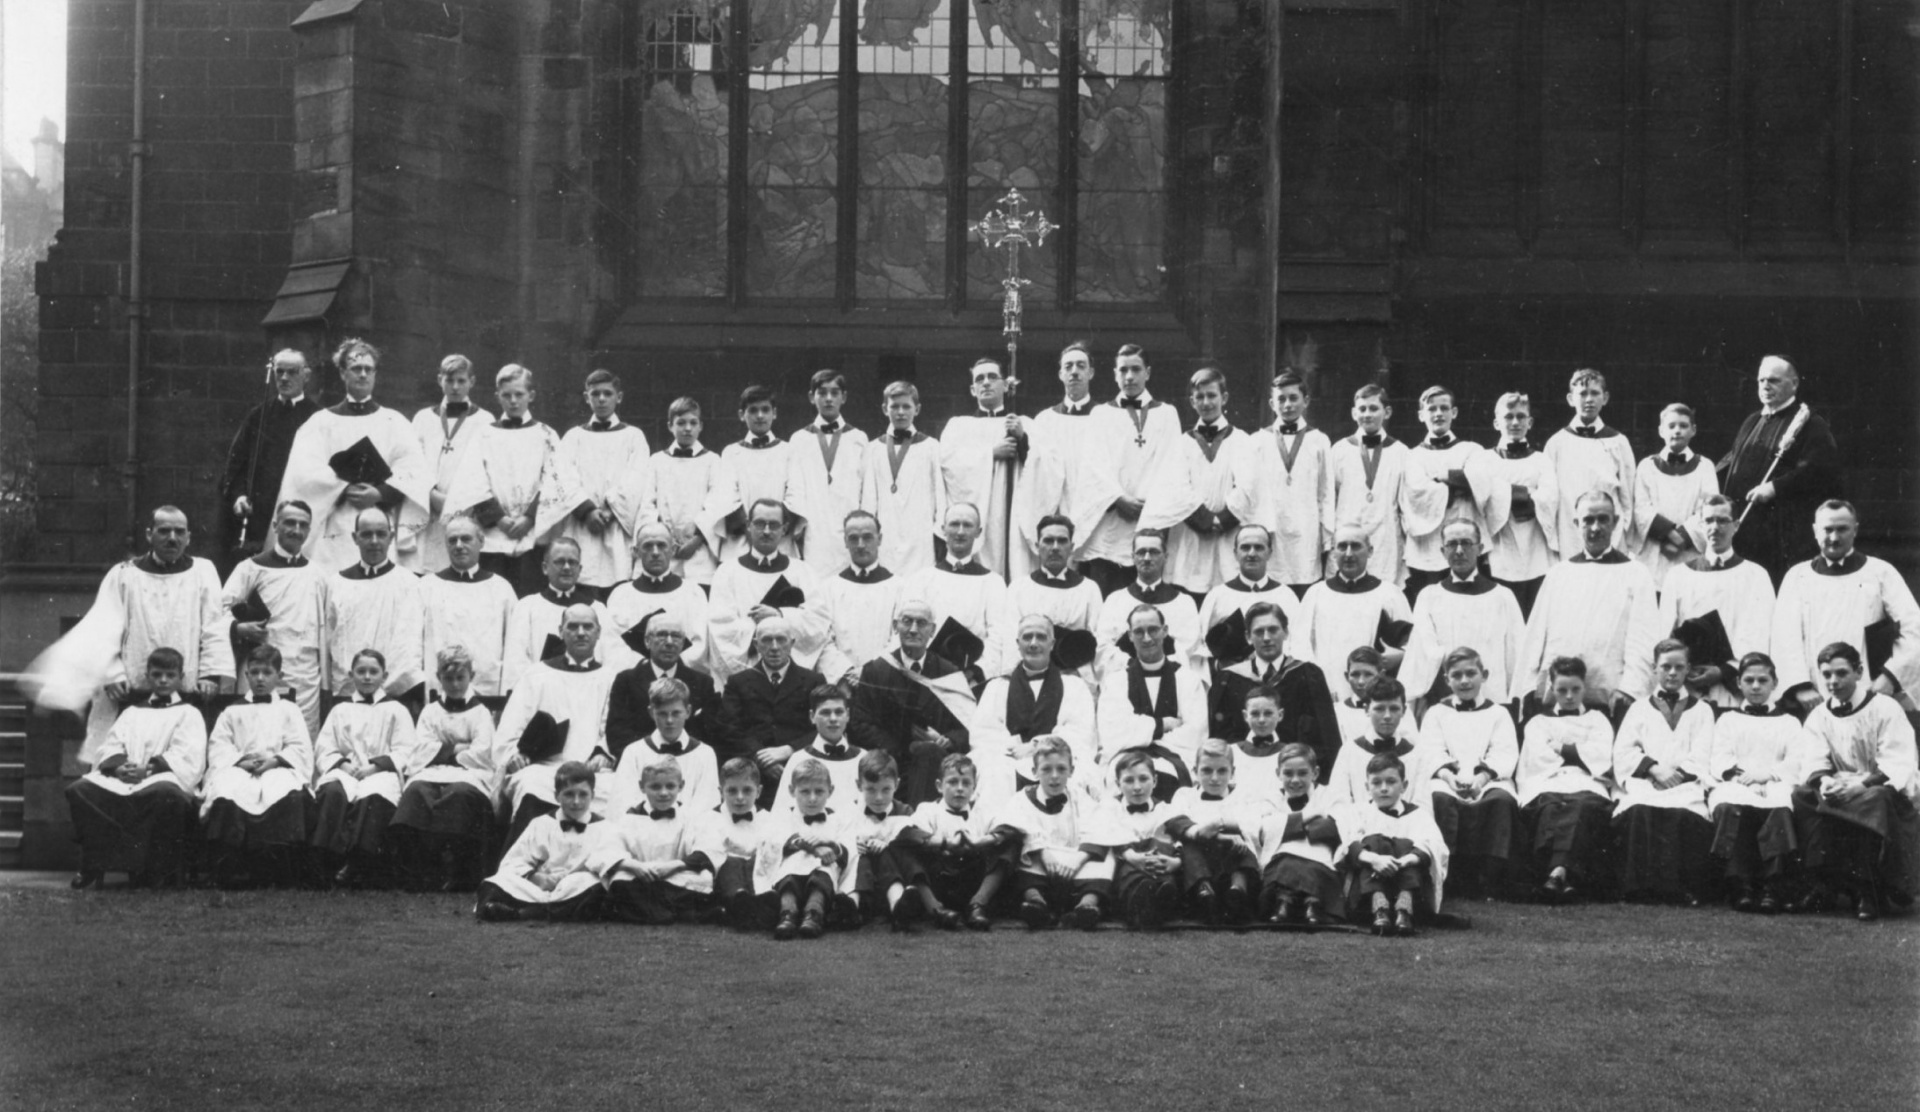 Newcastle Cathedral, 1938